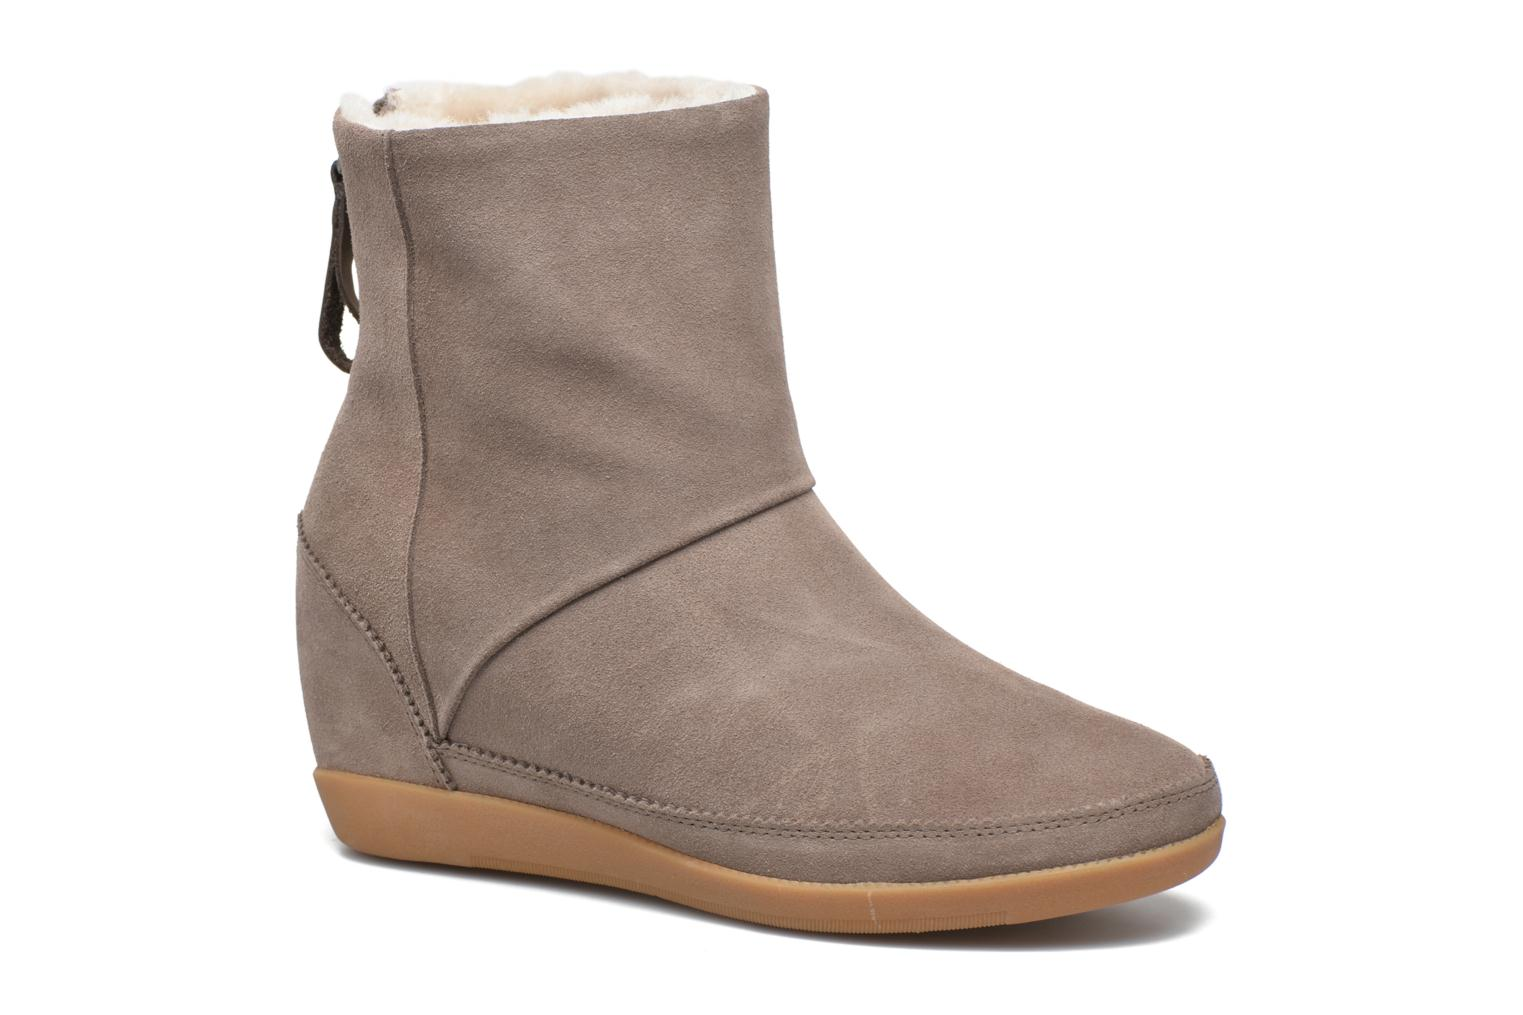 Marques Chaussure femme Shoe the bear femme MAY CROSS 160 Taupe